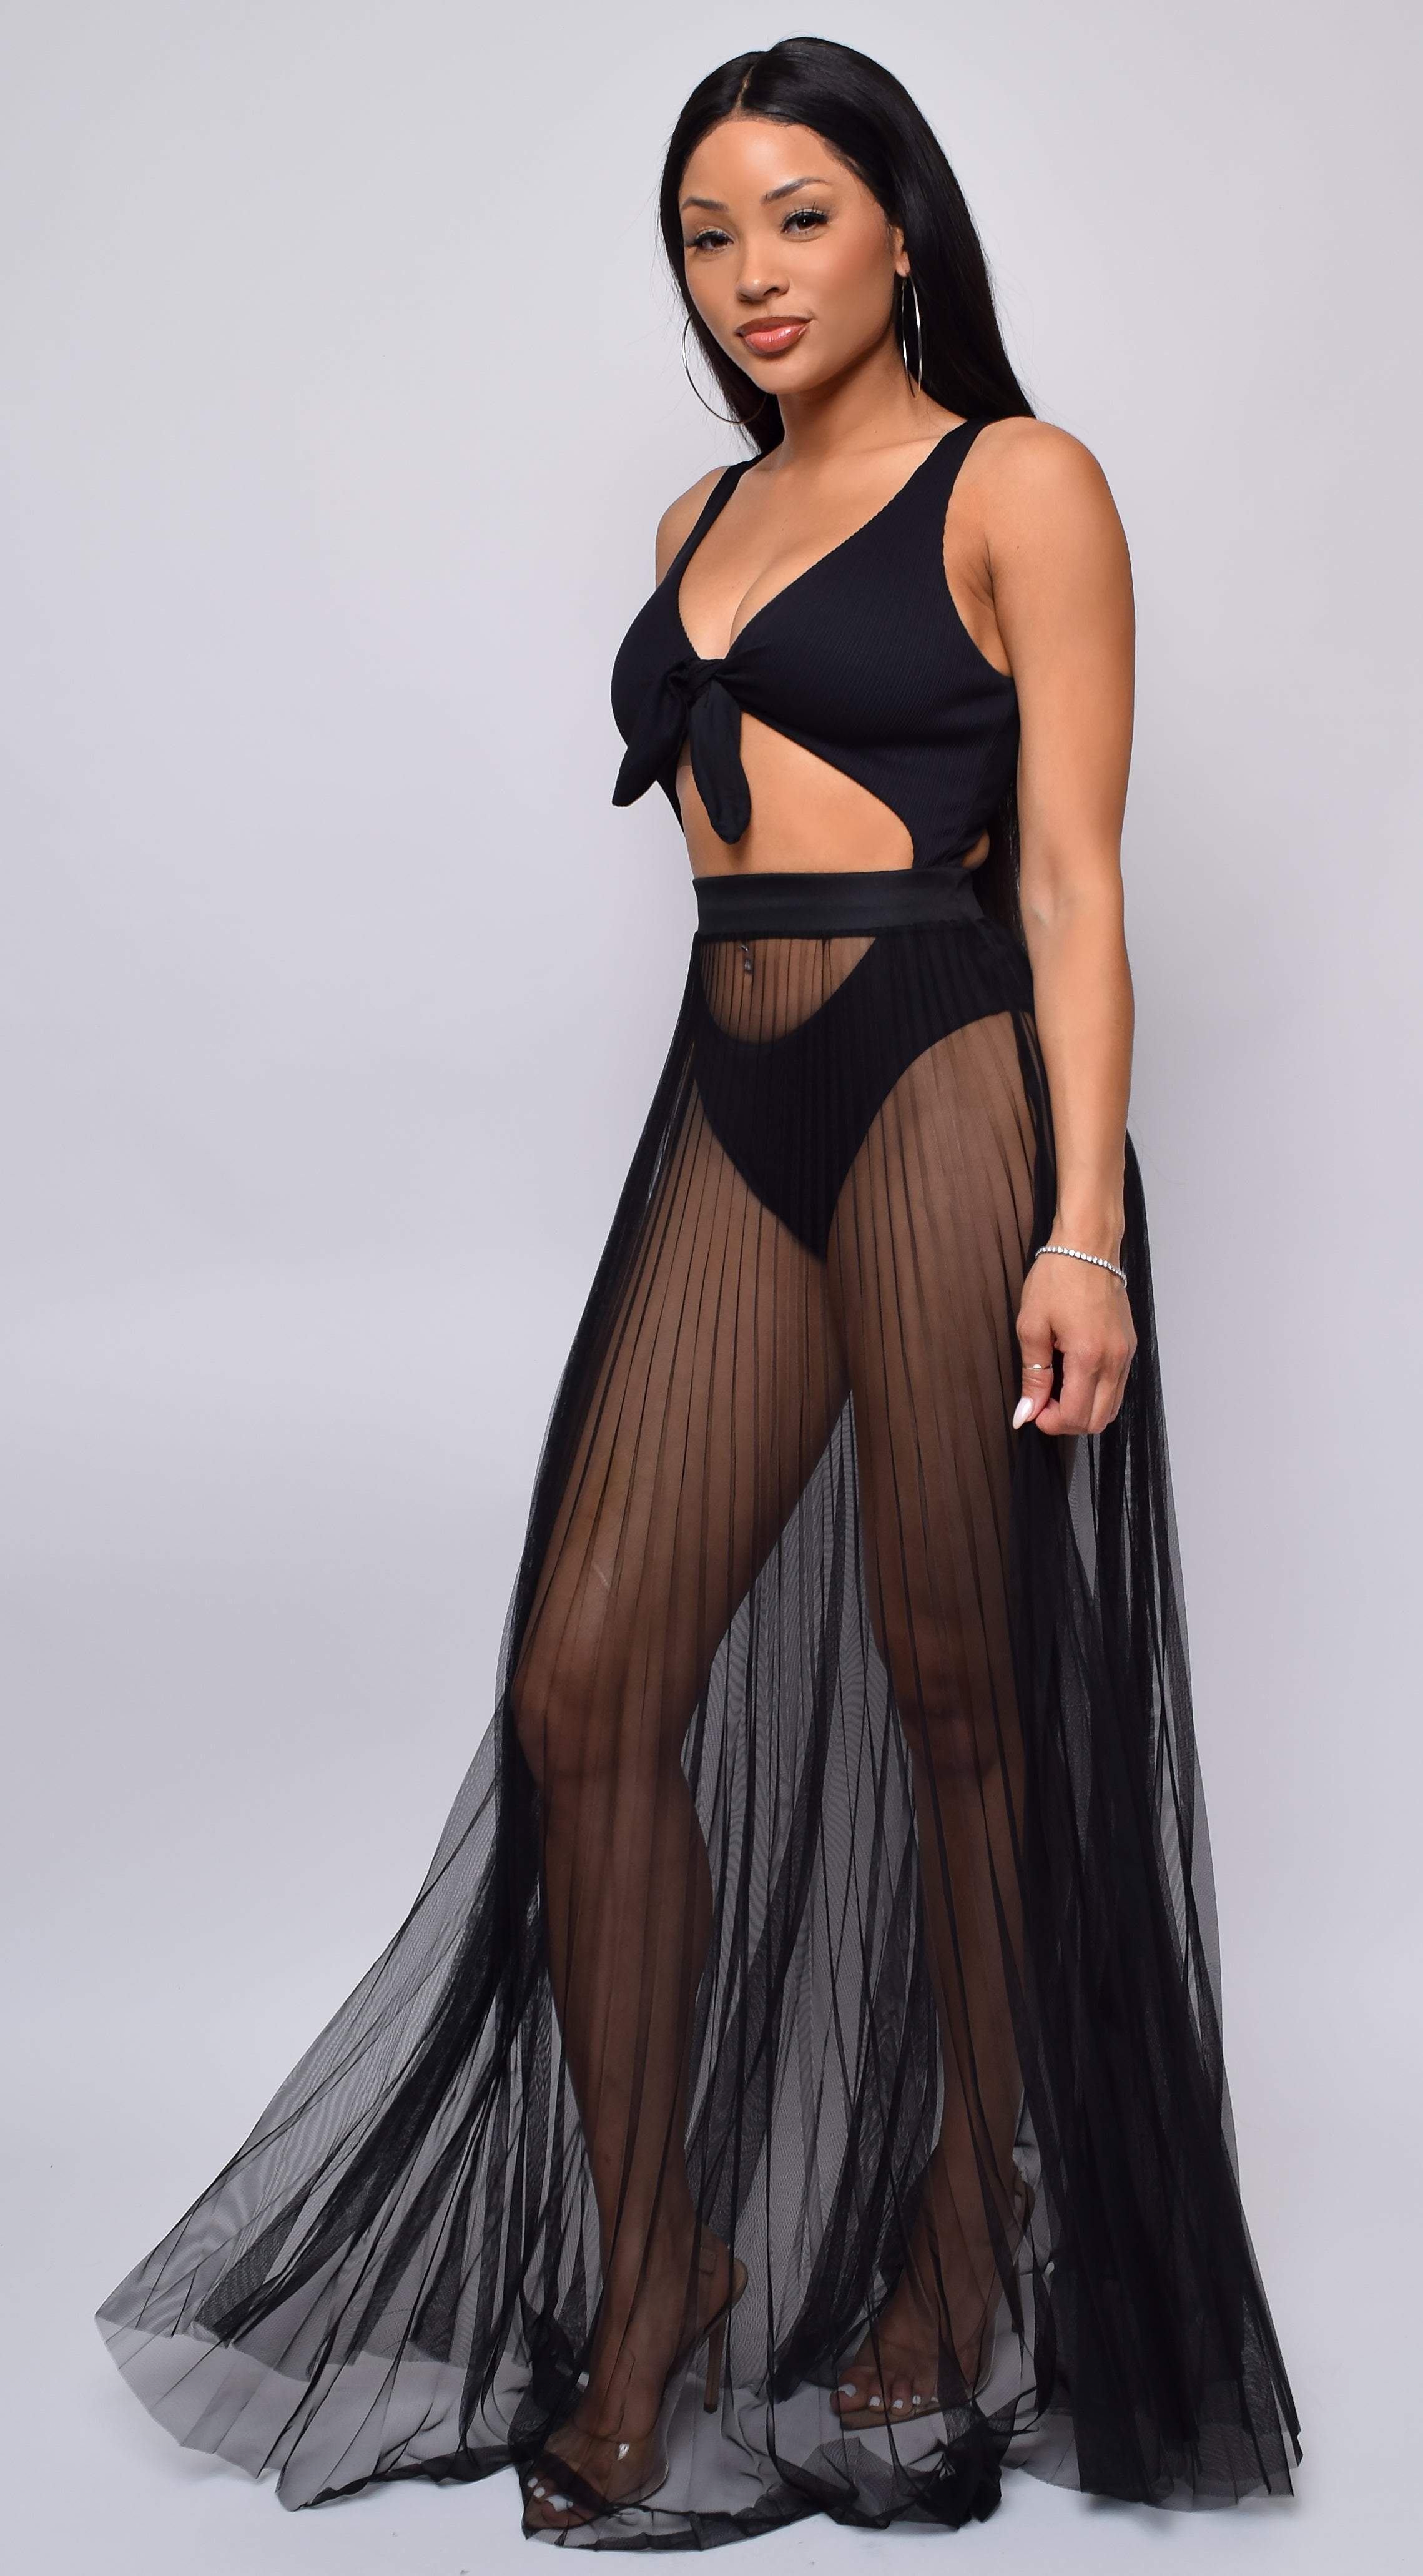 Palmaria Black Pleated Sheer Tulle Maxi Cover-up Skirt